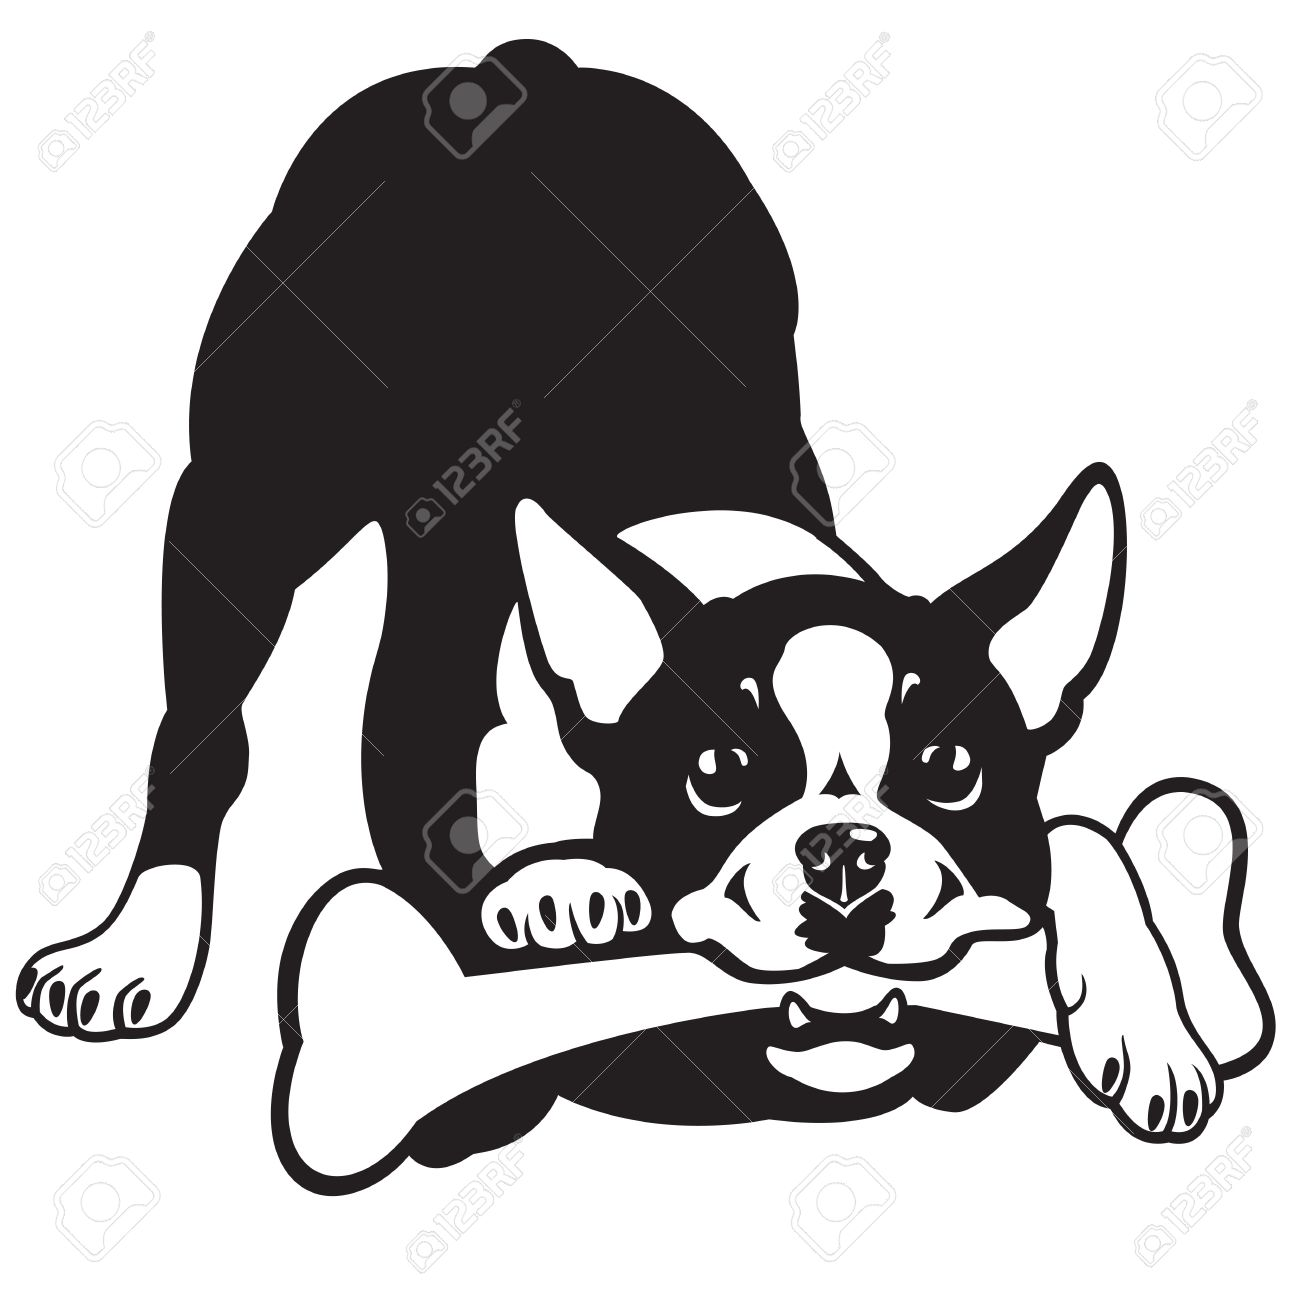 297 boston terrier stock illustrations cliparts and royalty free